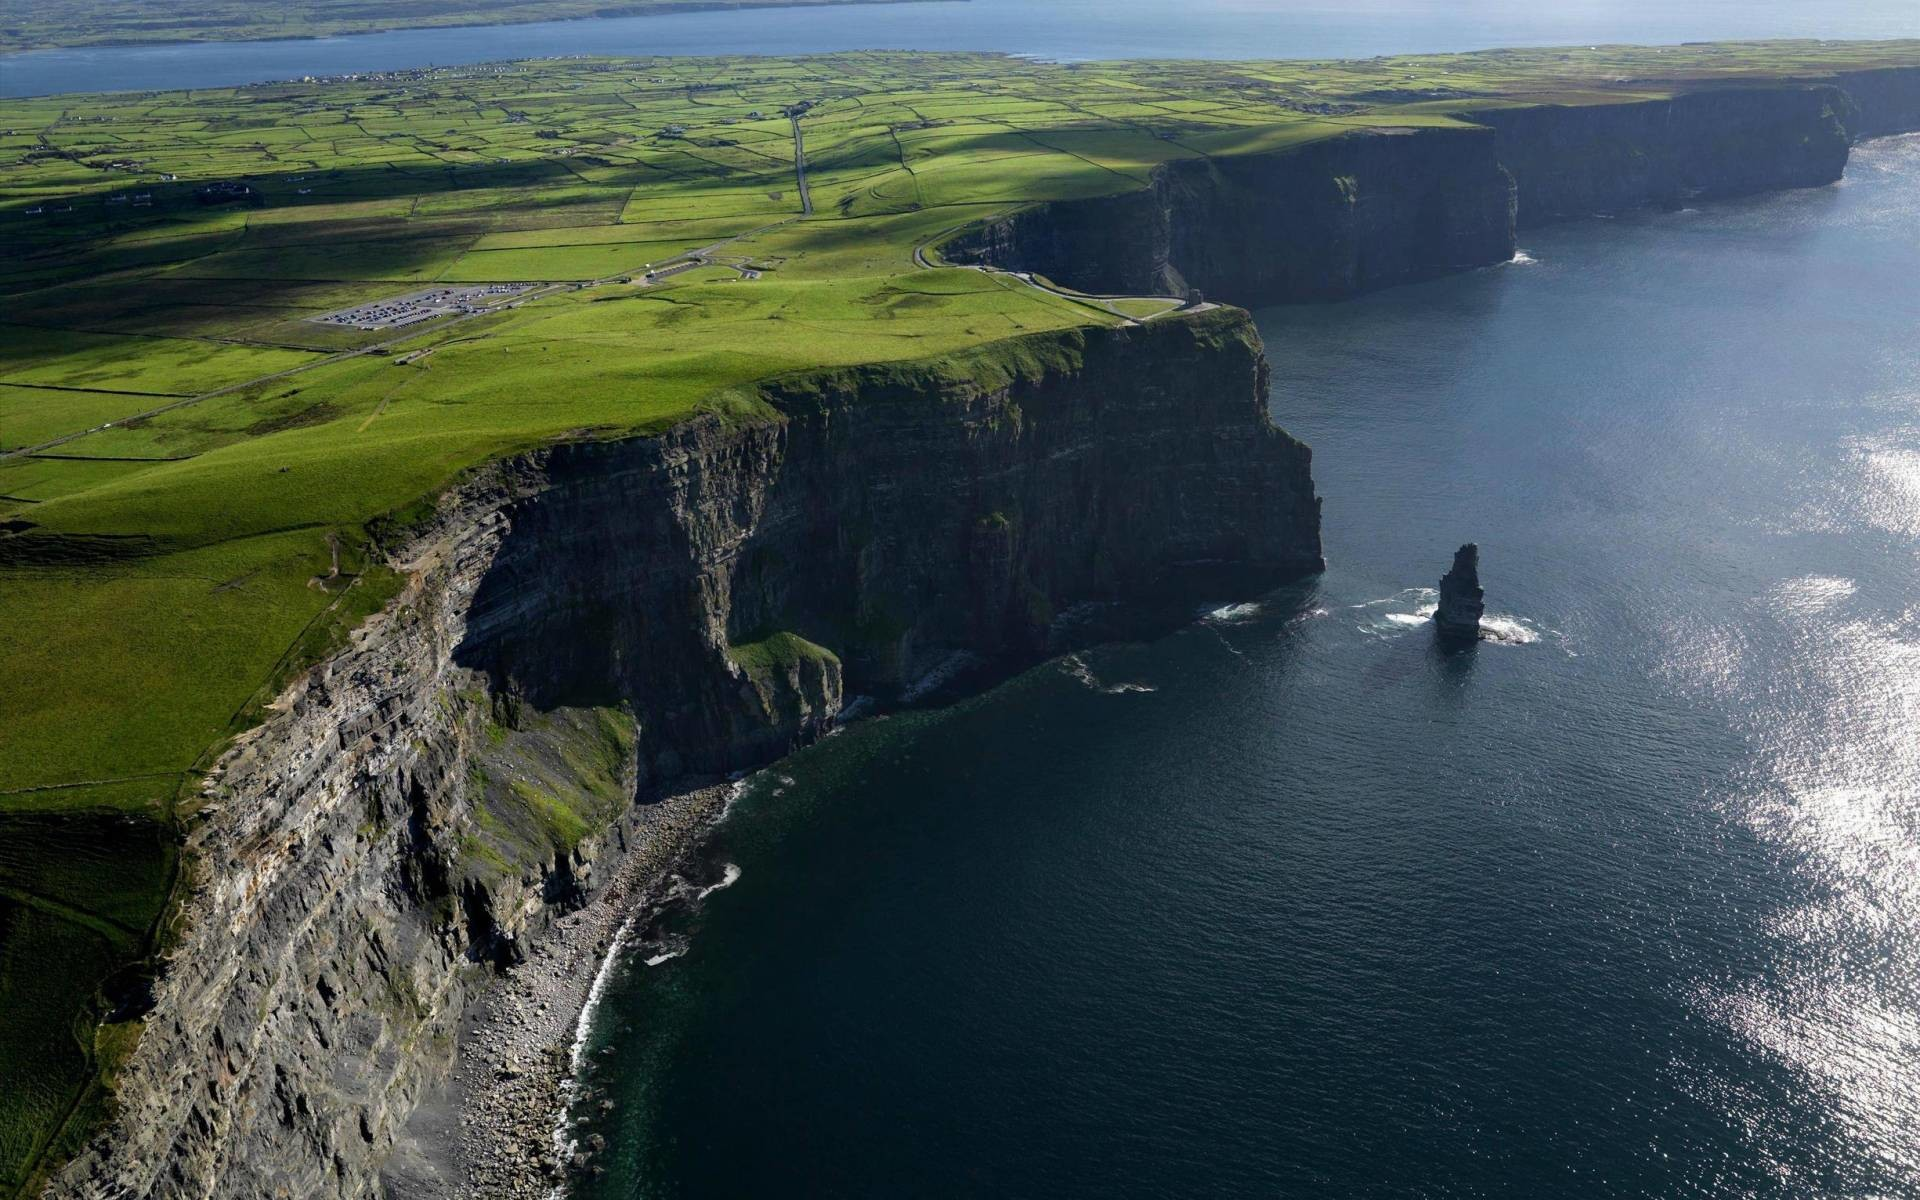 1920x1200 ireland moher cliffs Wallpaper | HD Wallpapers